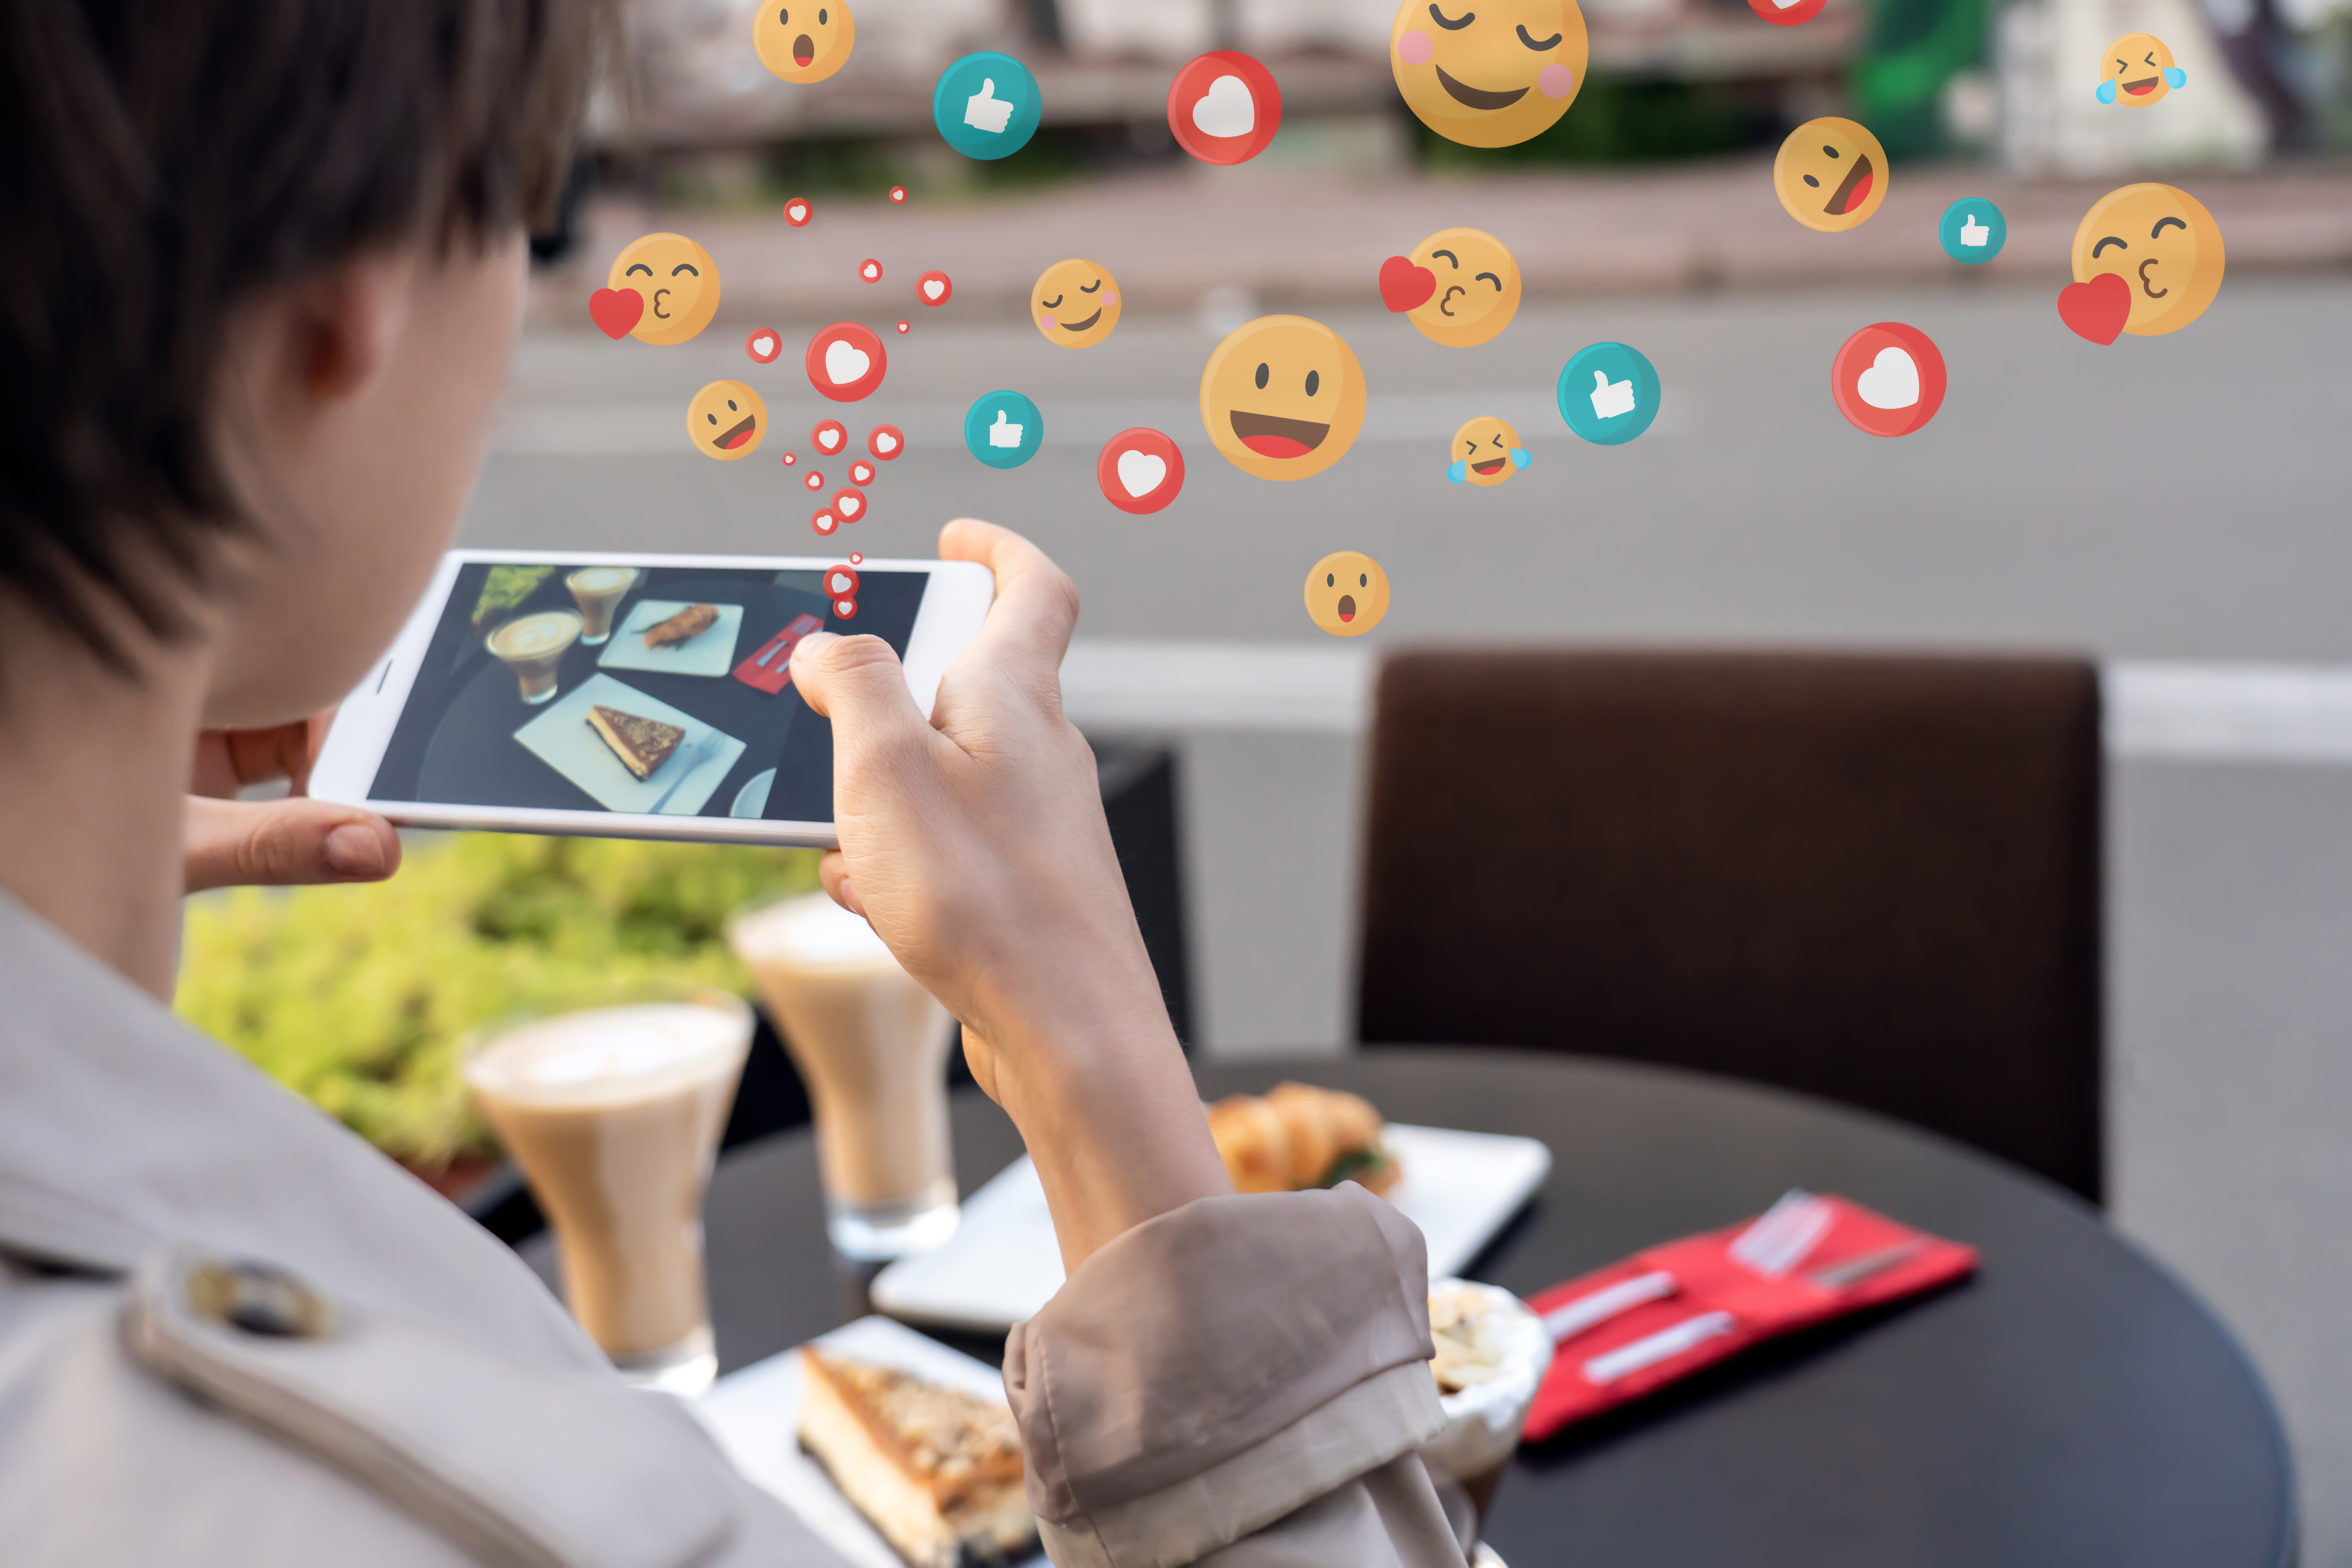 A person taking a photo with a phone of food with emoji rising as reactions.